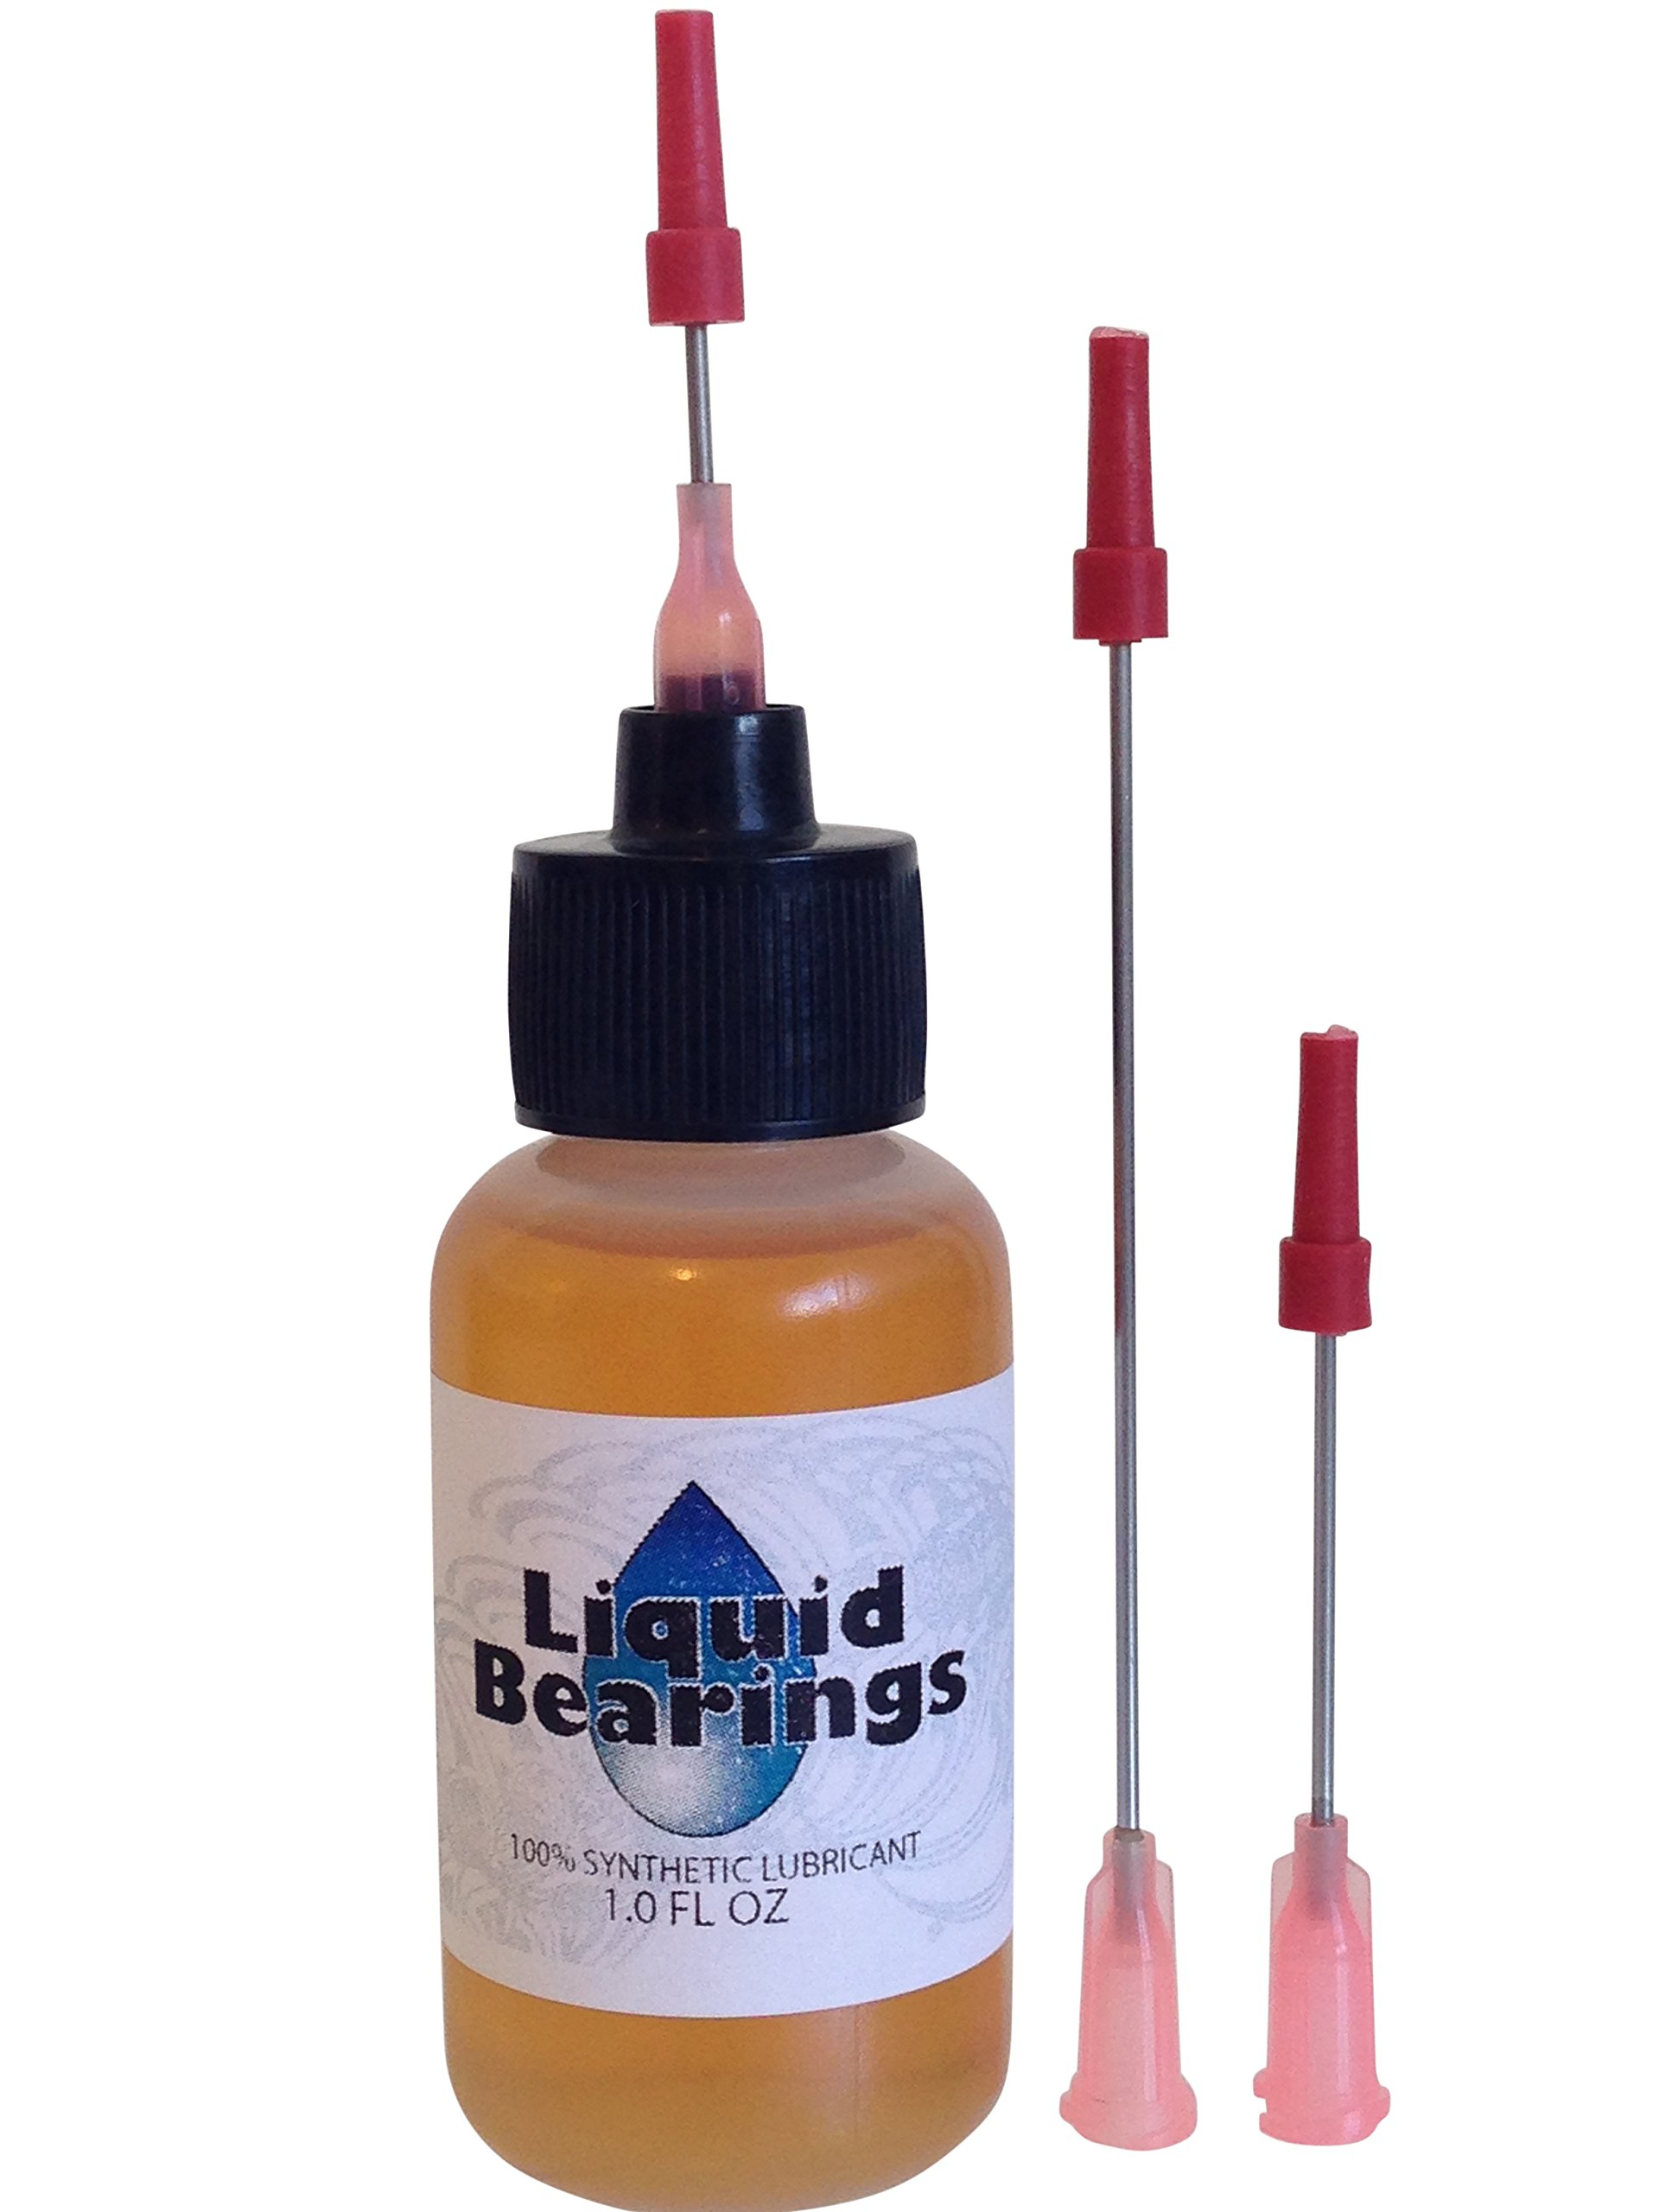 Liquid Bearings 100%-synthetic oil for all sunroof lubrication, use it on slides, motors, latches, any moving parts, never becomes gummy, gets sticky mechanisms moving again! (1 oz. w/3 needles)